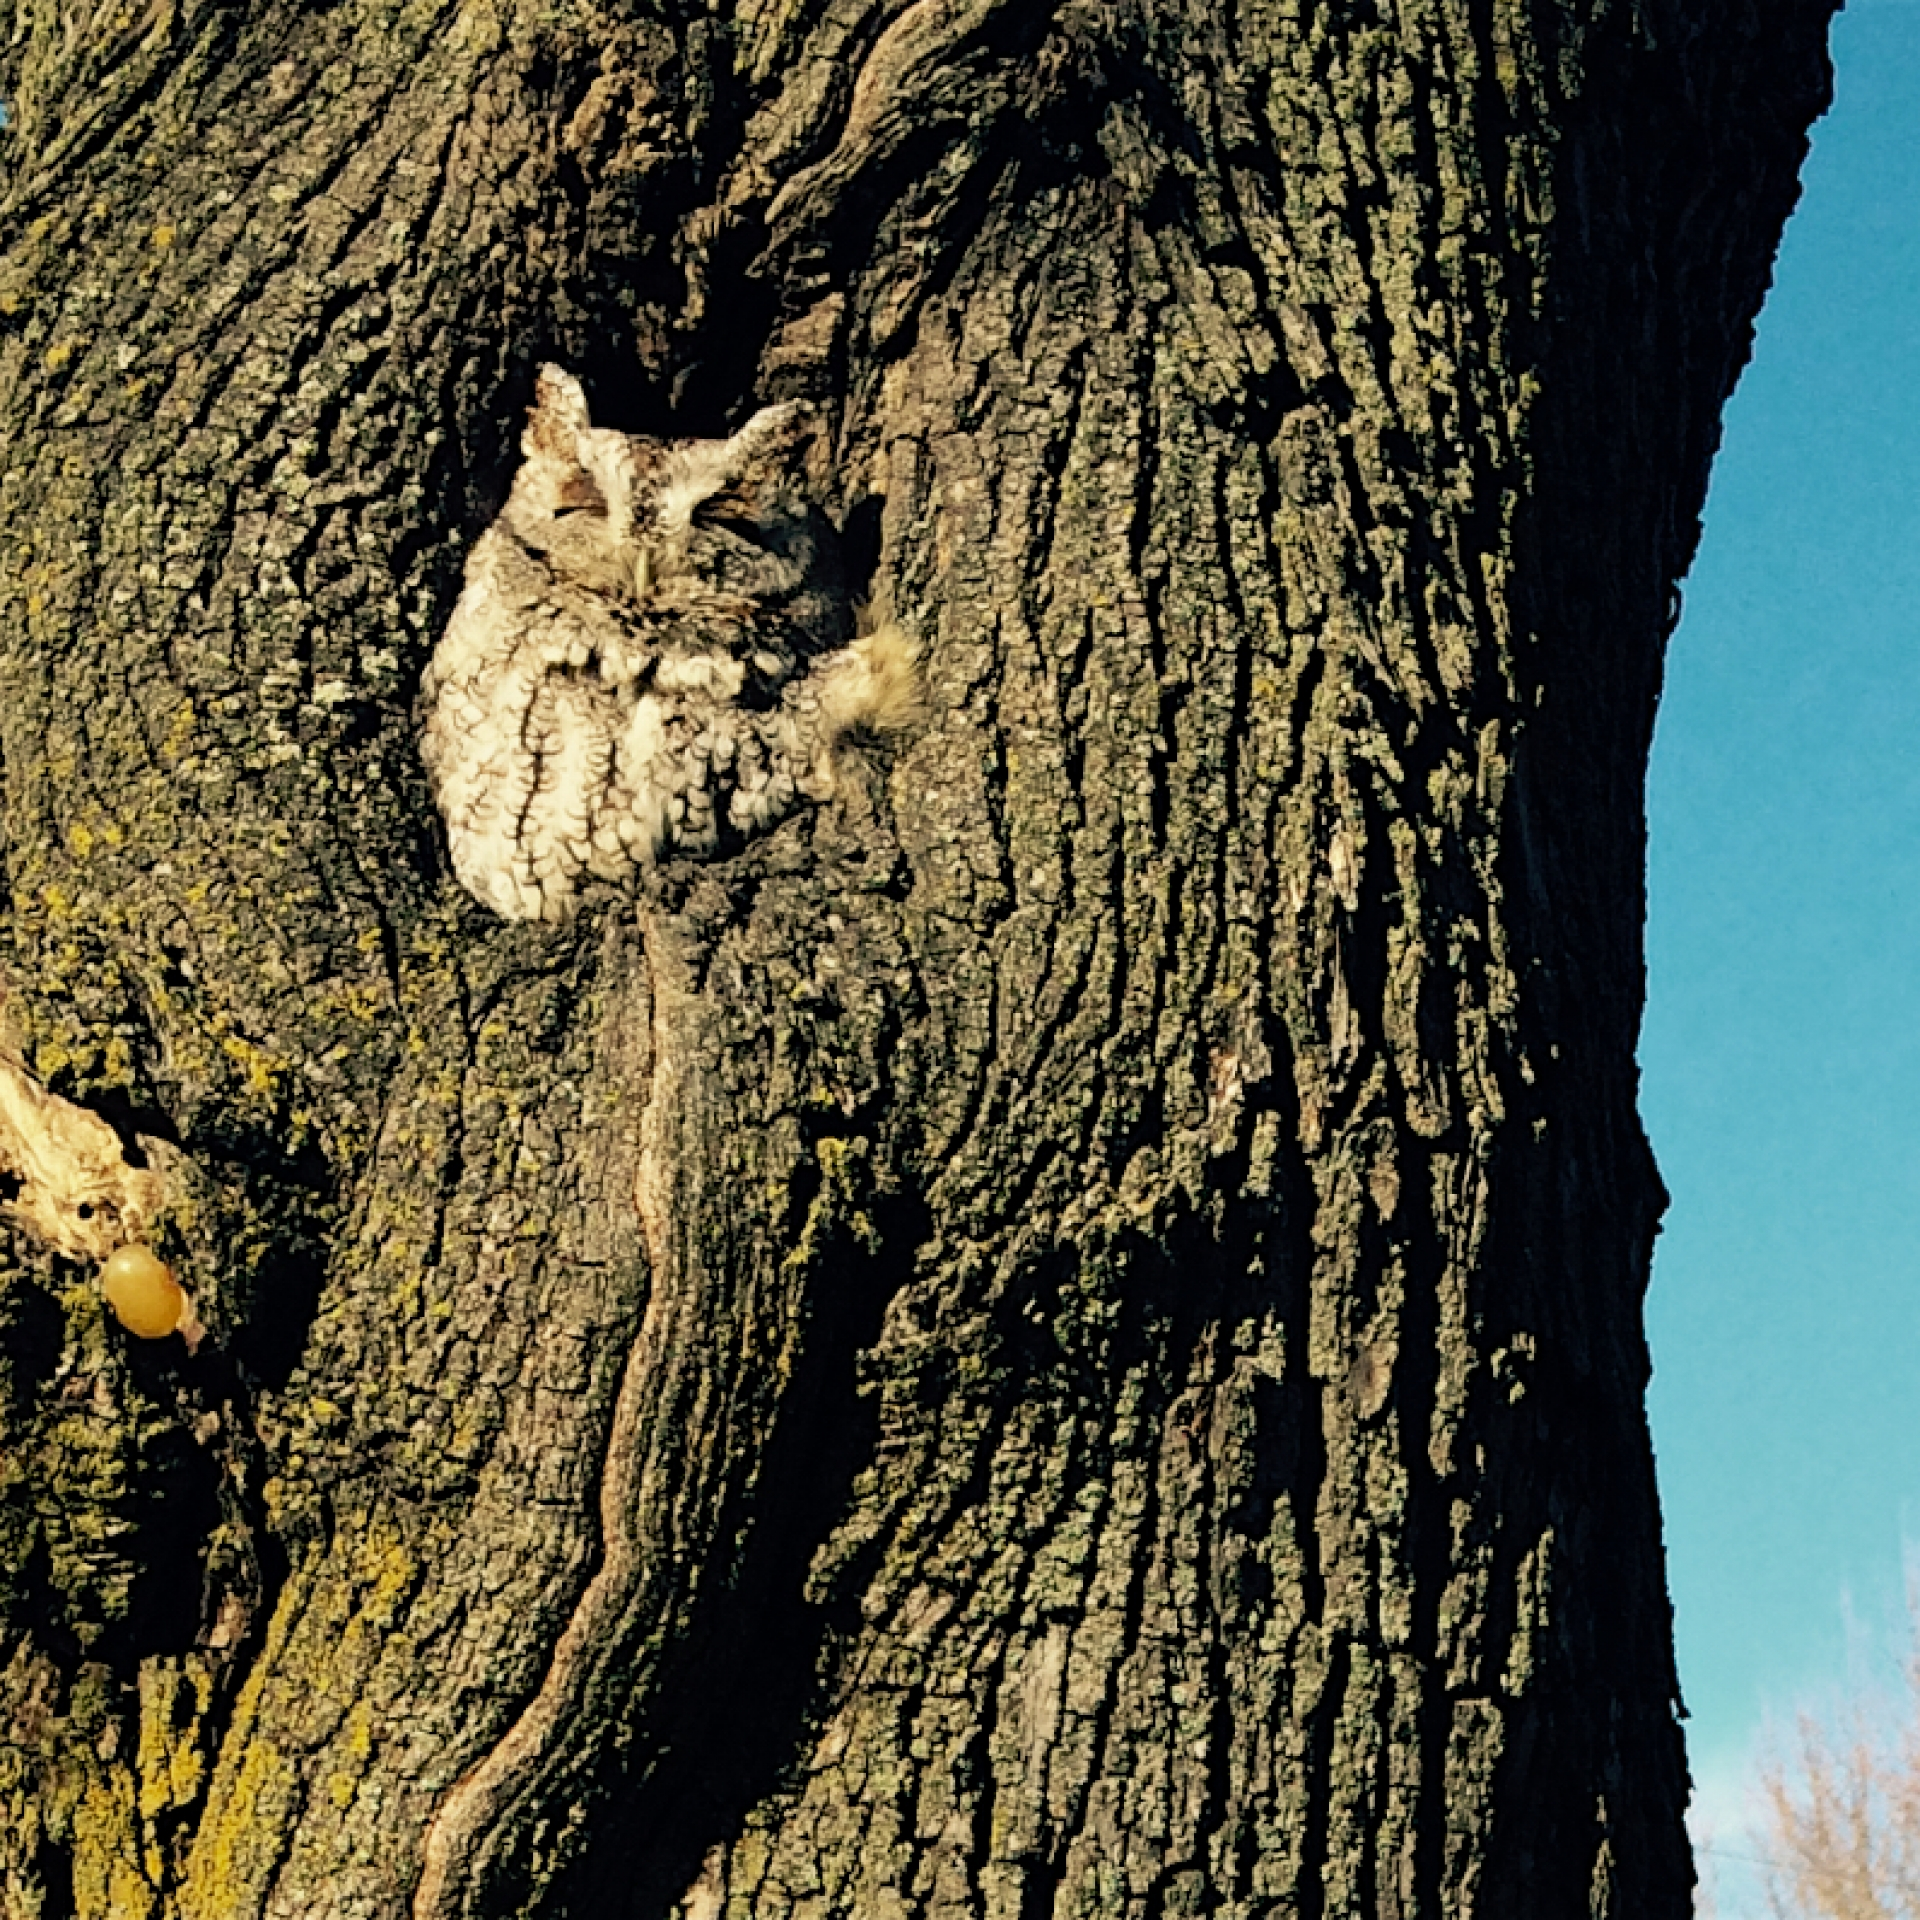 Screech Owl nesting in an urban street tree.